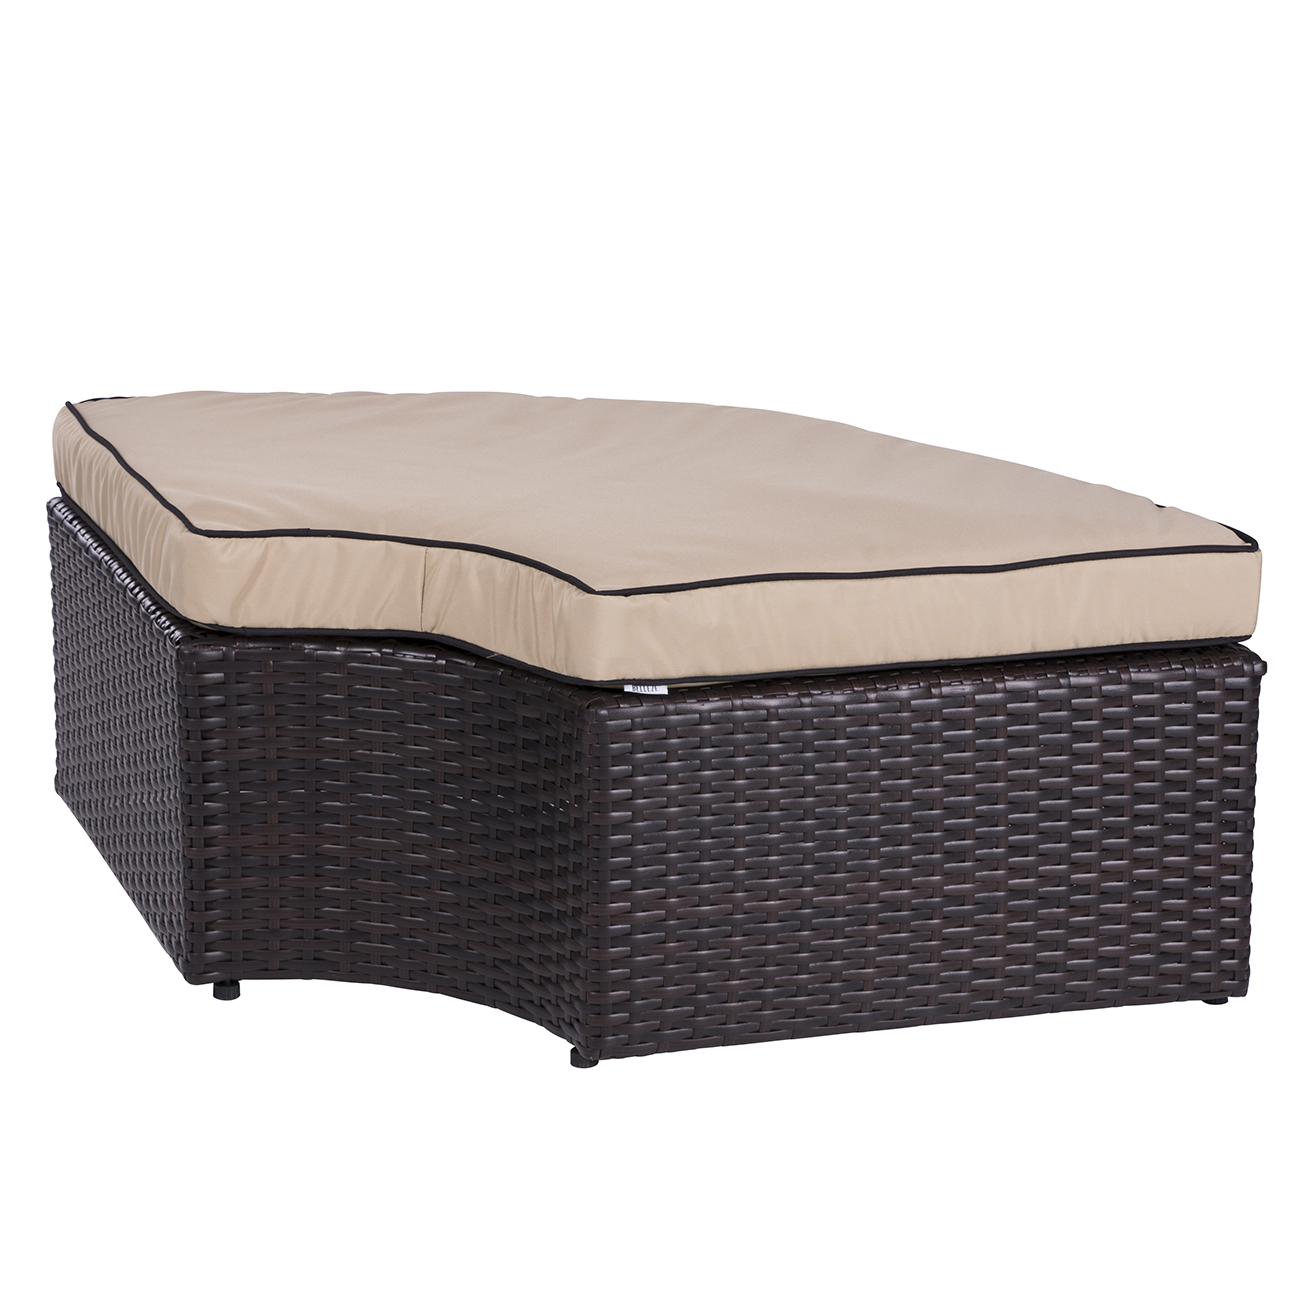 canopy daybed outdoor wicker sun sofa lounge diamond park ave eastern king bed in desert sand patio 2 1 rattan set round sunbed w